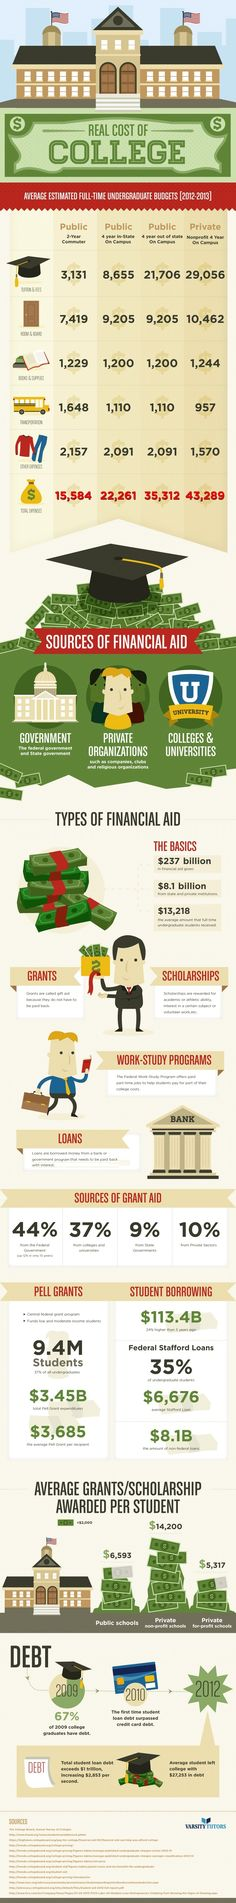 College Costs and Financial Aid By the Numbers  - The True Cost of College Infographic #CollegeBound